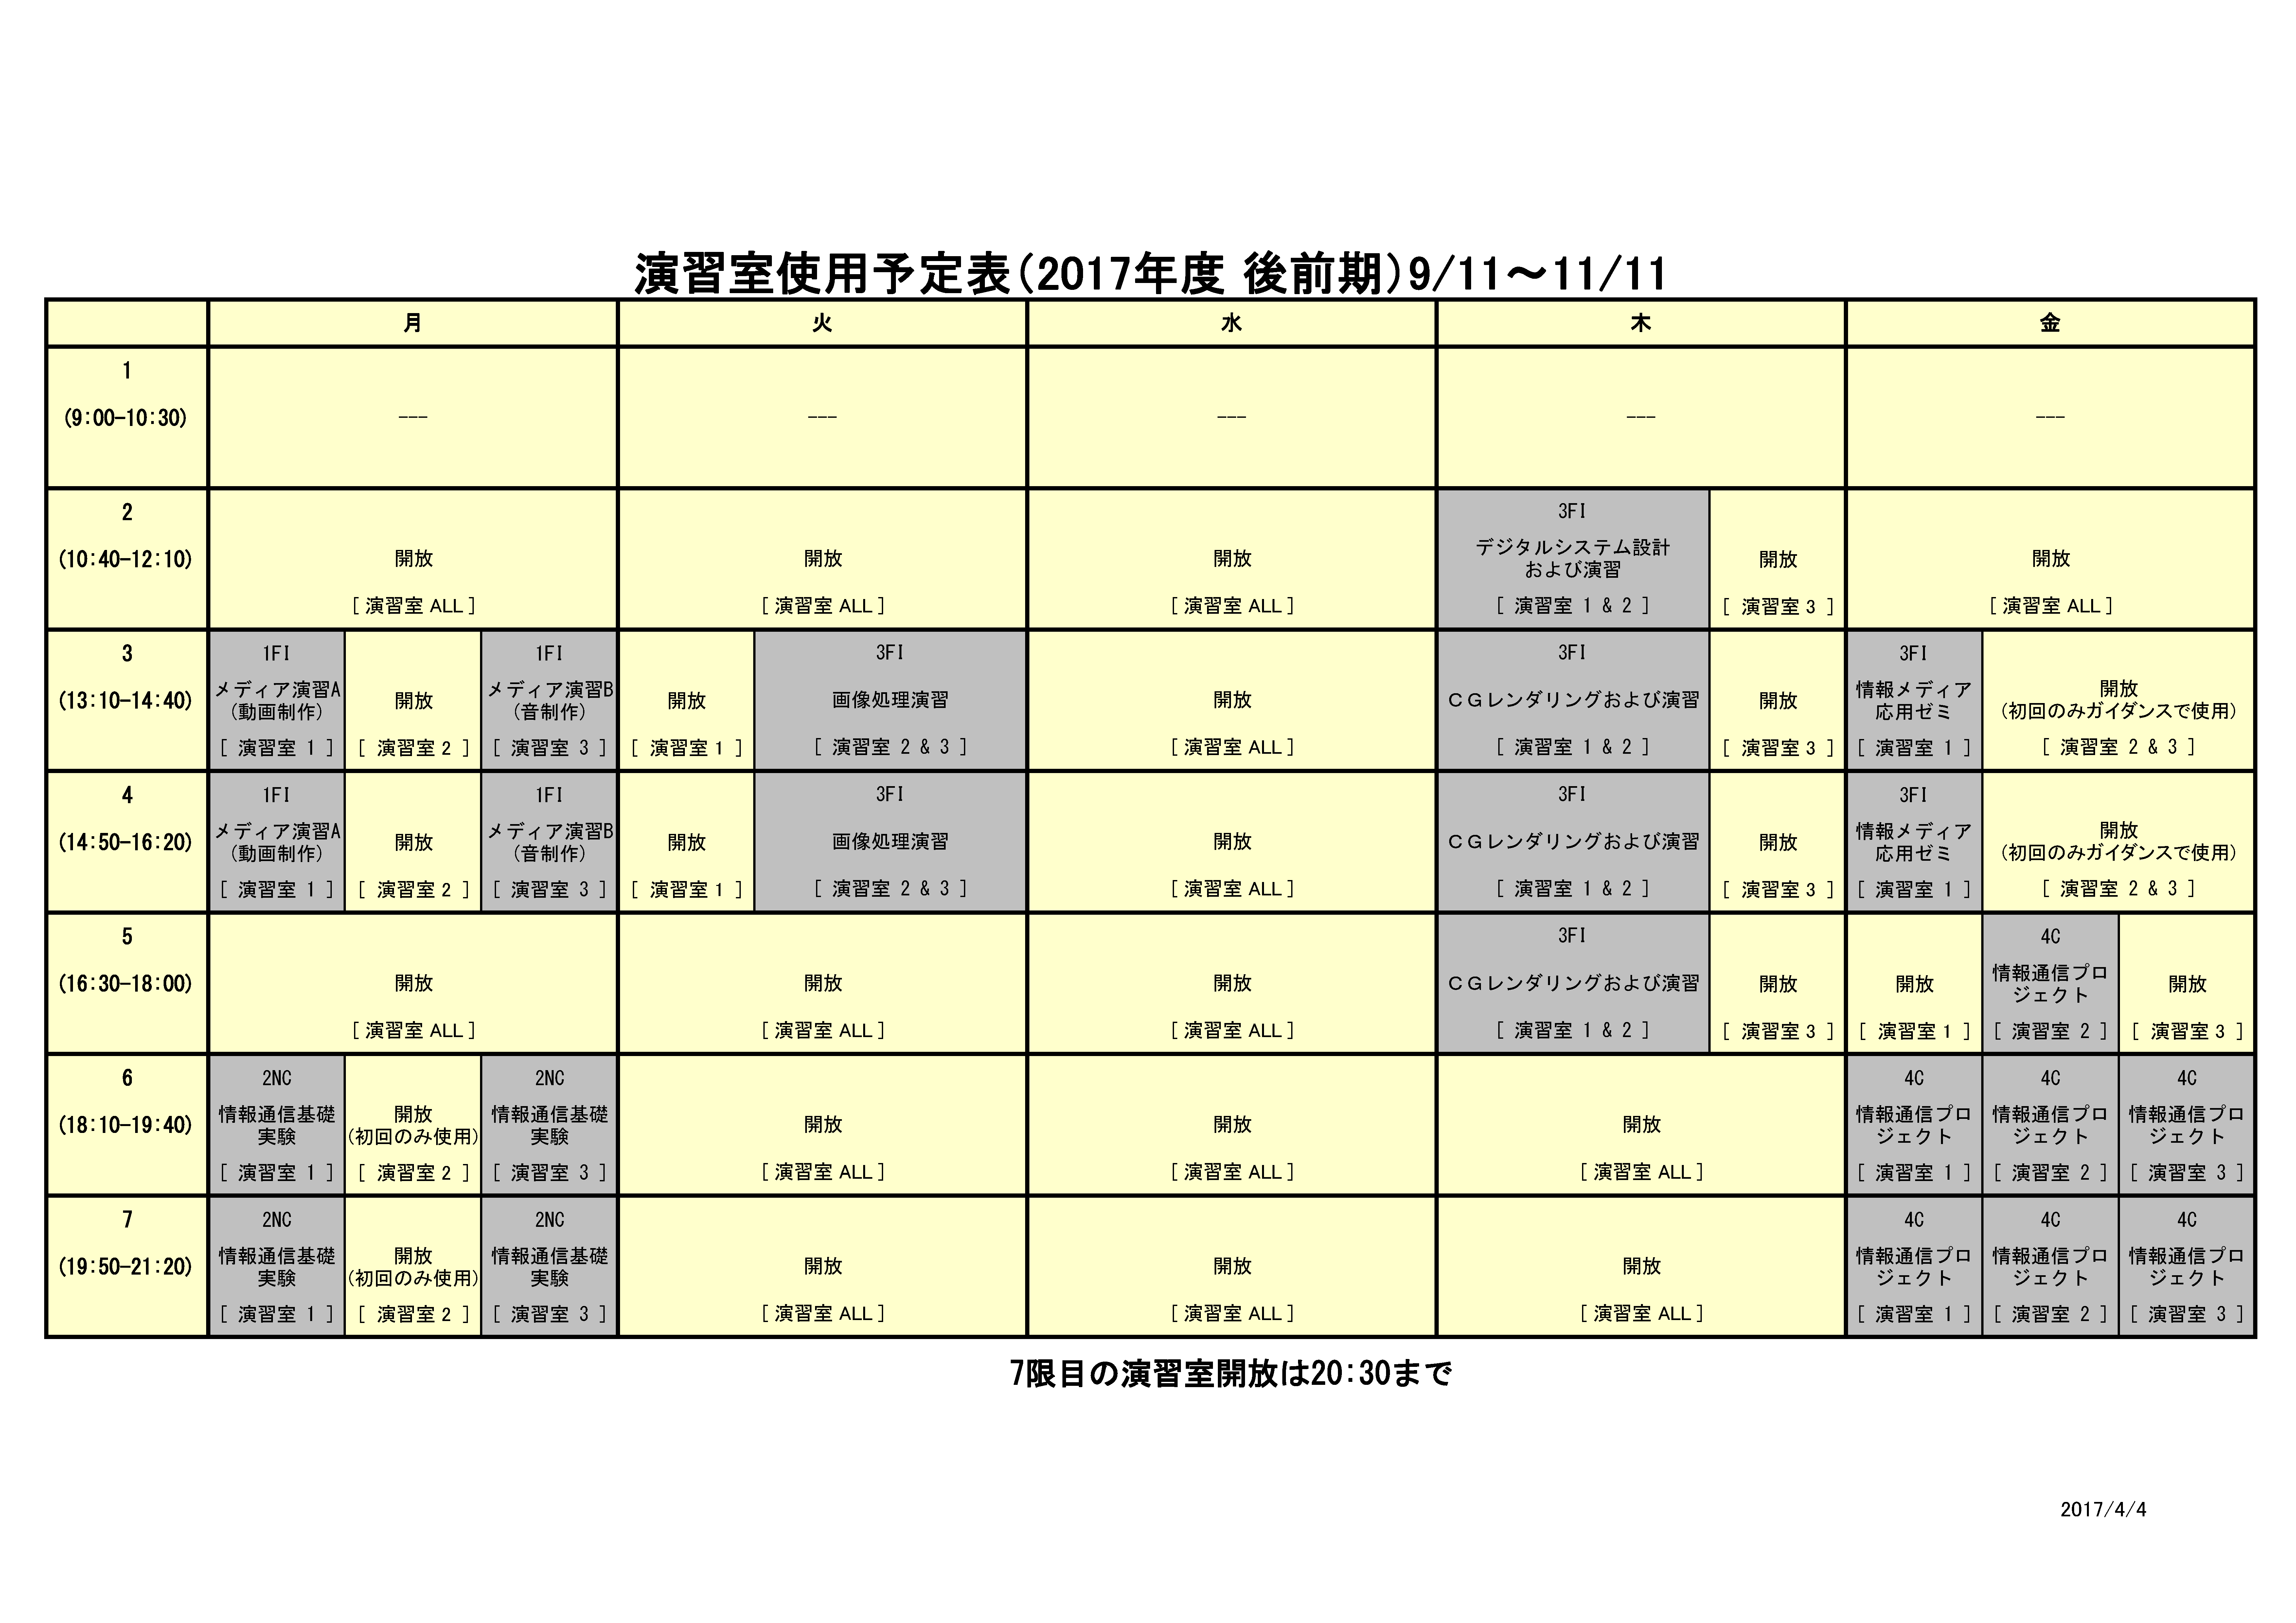 labo_timeTable_20170911-1111.png